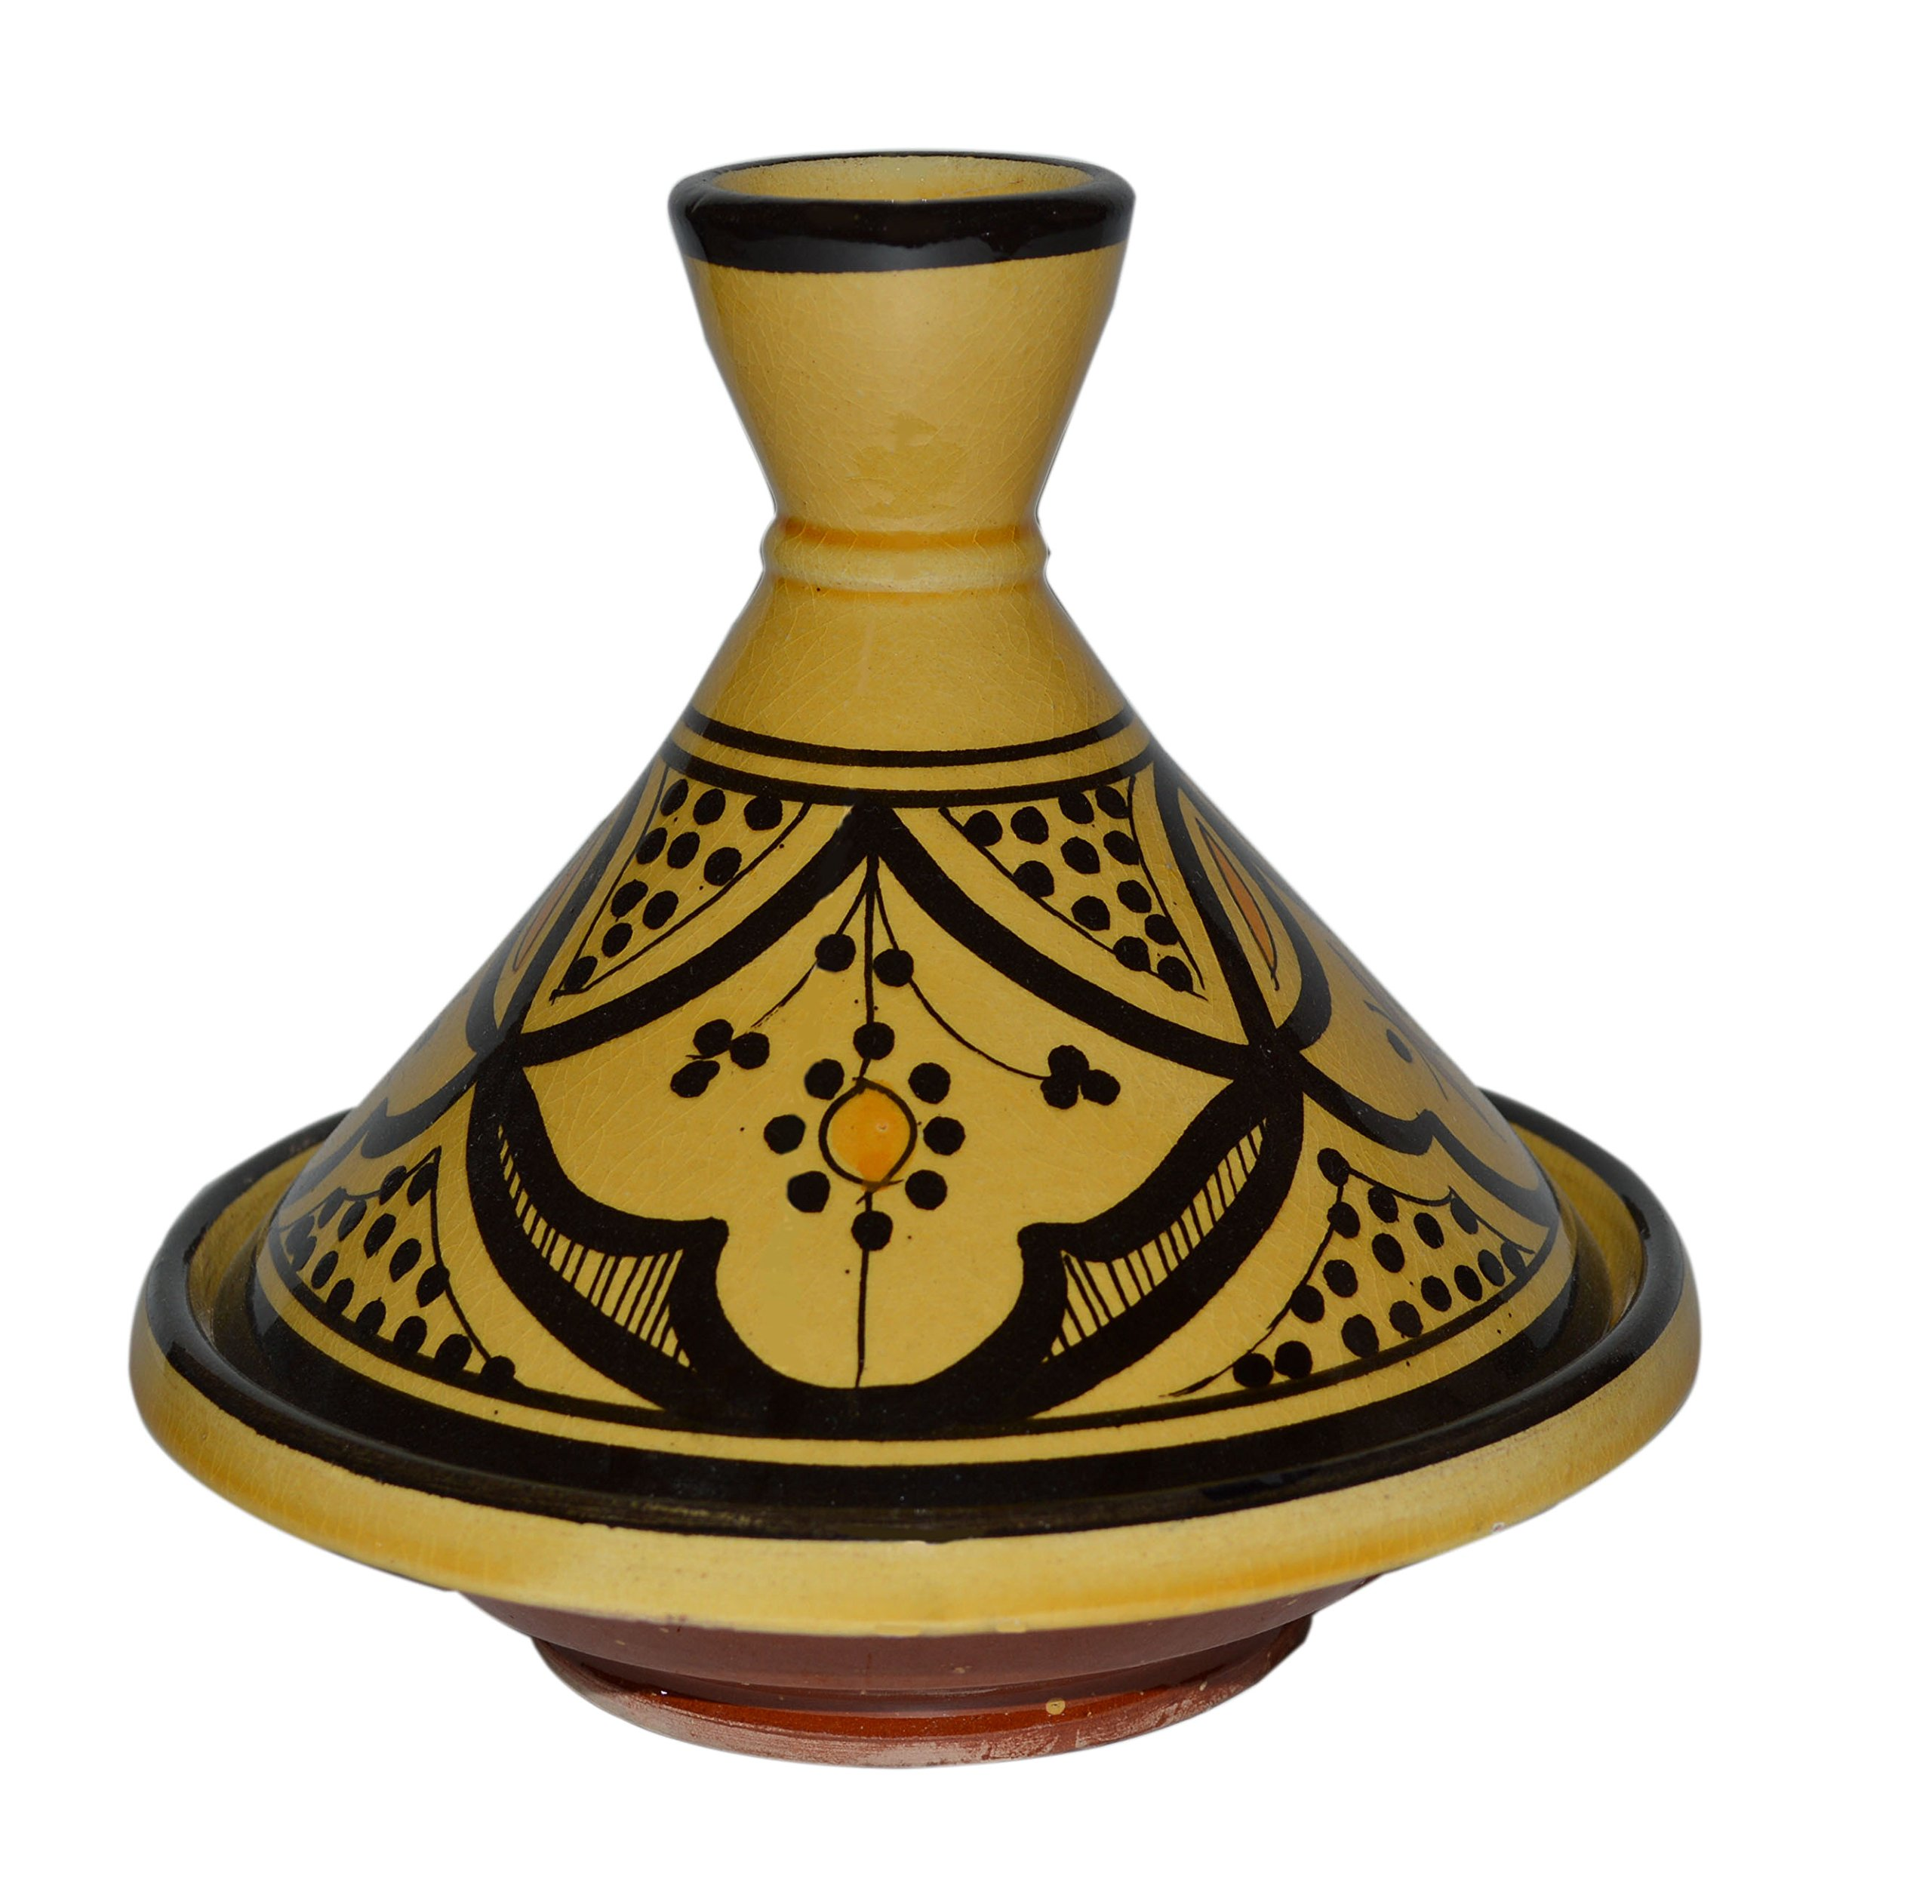 Moroccan Handmade Serving Tagine Exquisite Ceramic Vivid colors Original 6 Inches in Diameter by Cooking Tagines